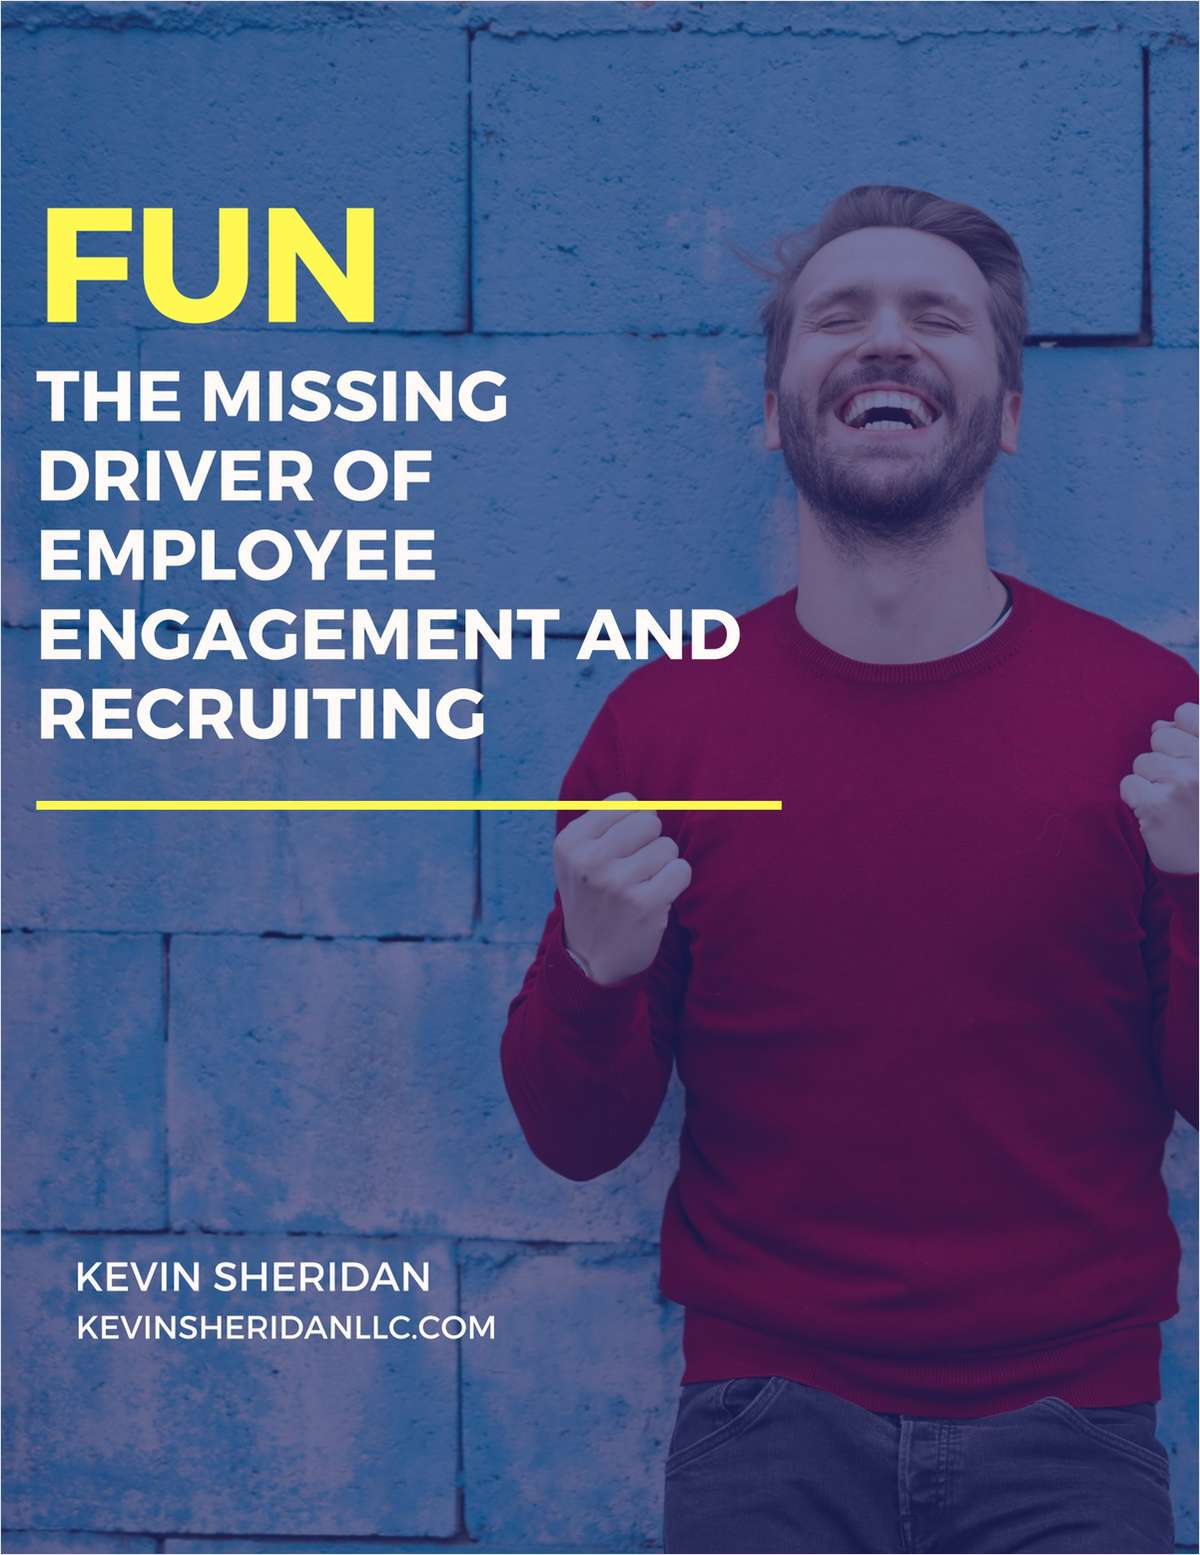 Fun - The Missing Driver of Employee Engagement and Recruiting